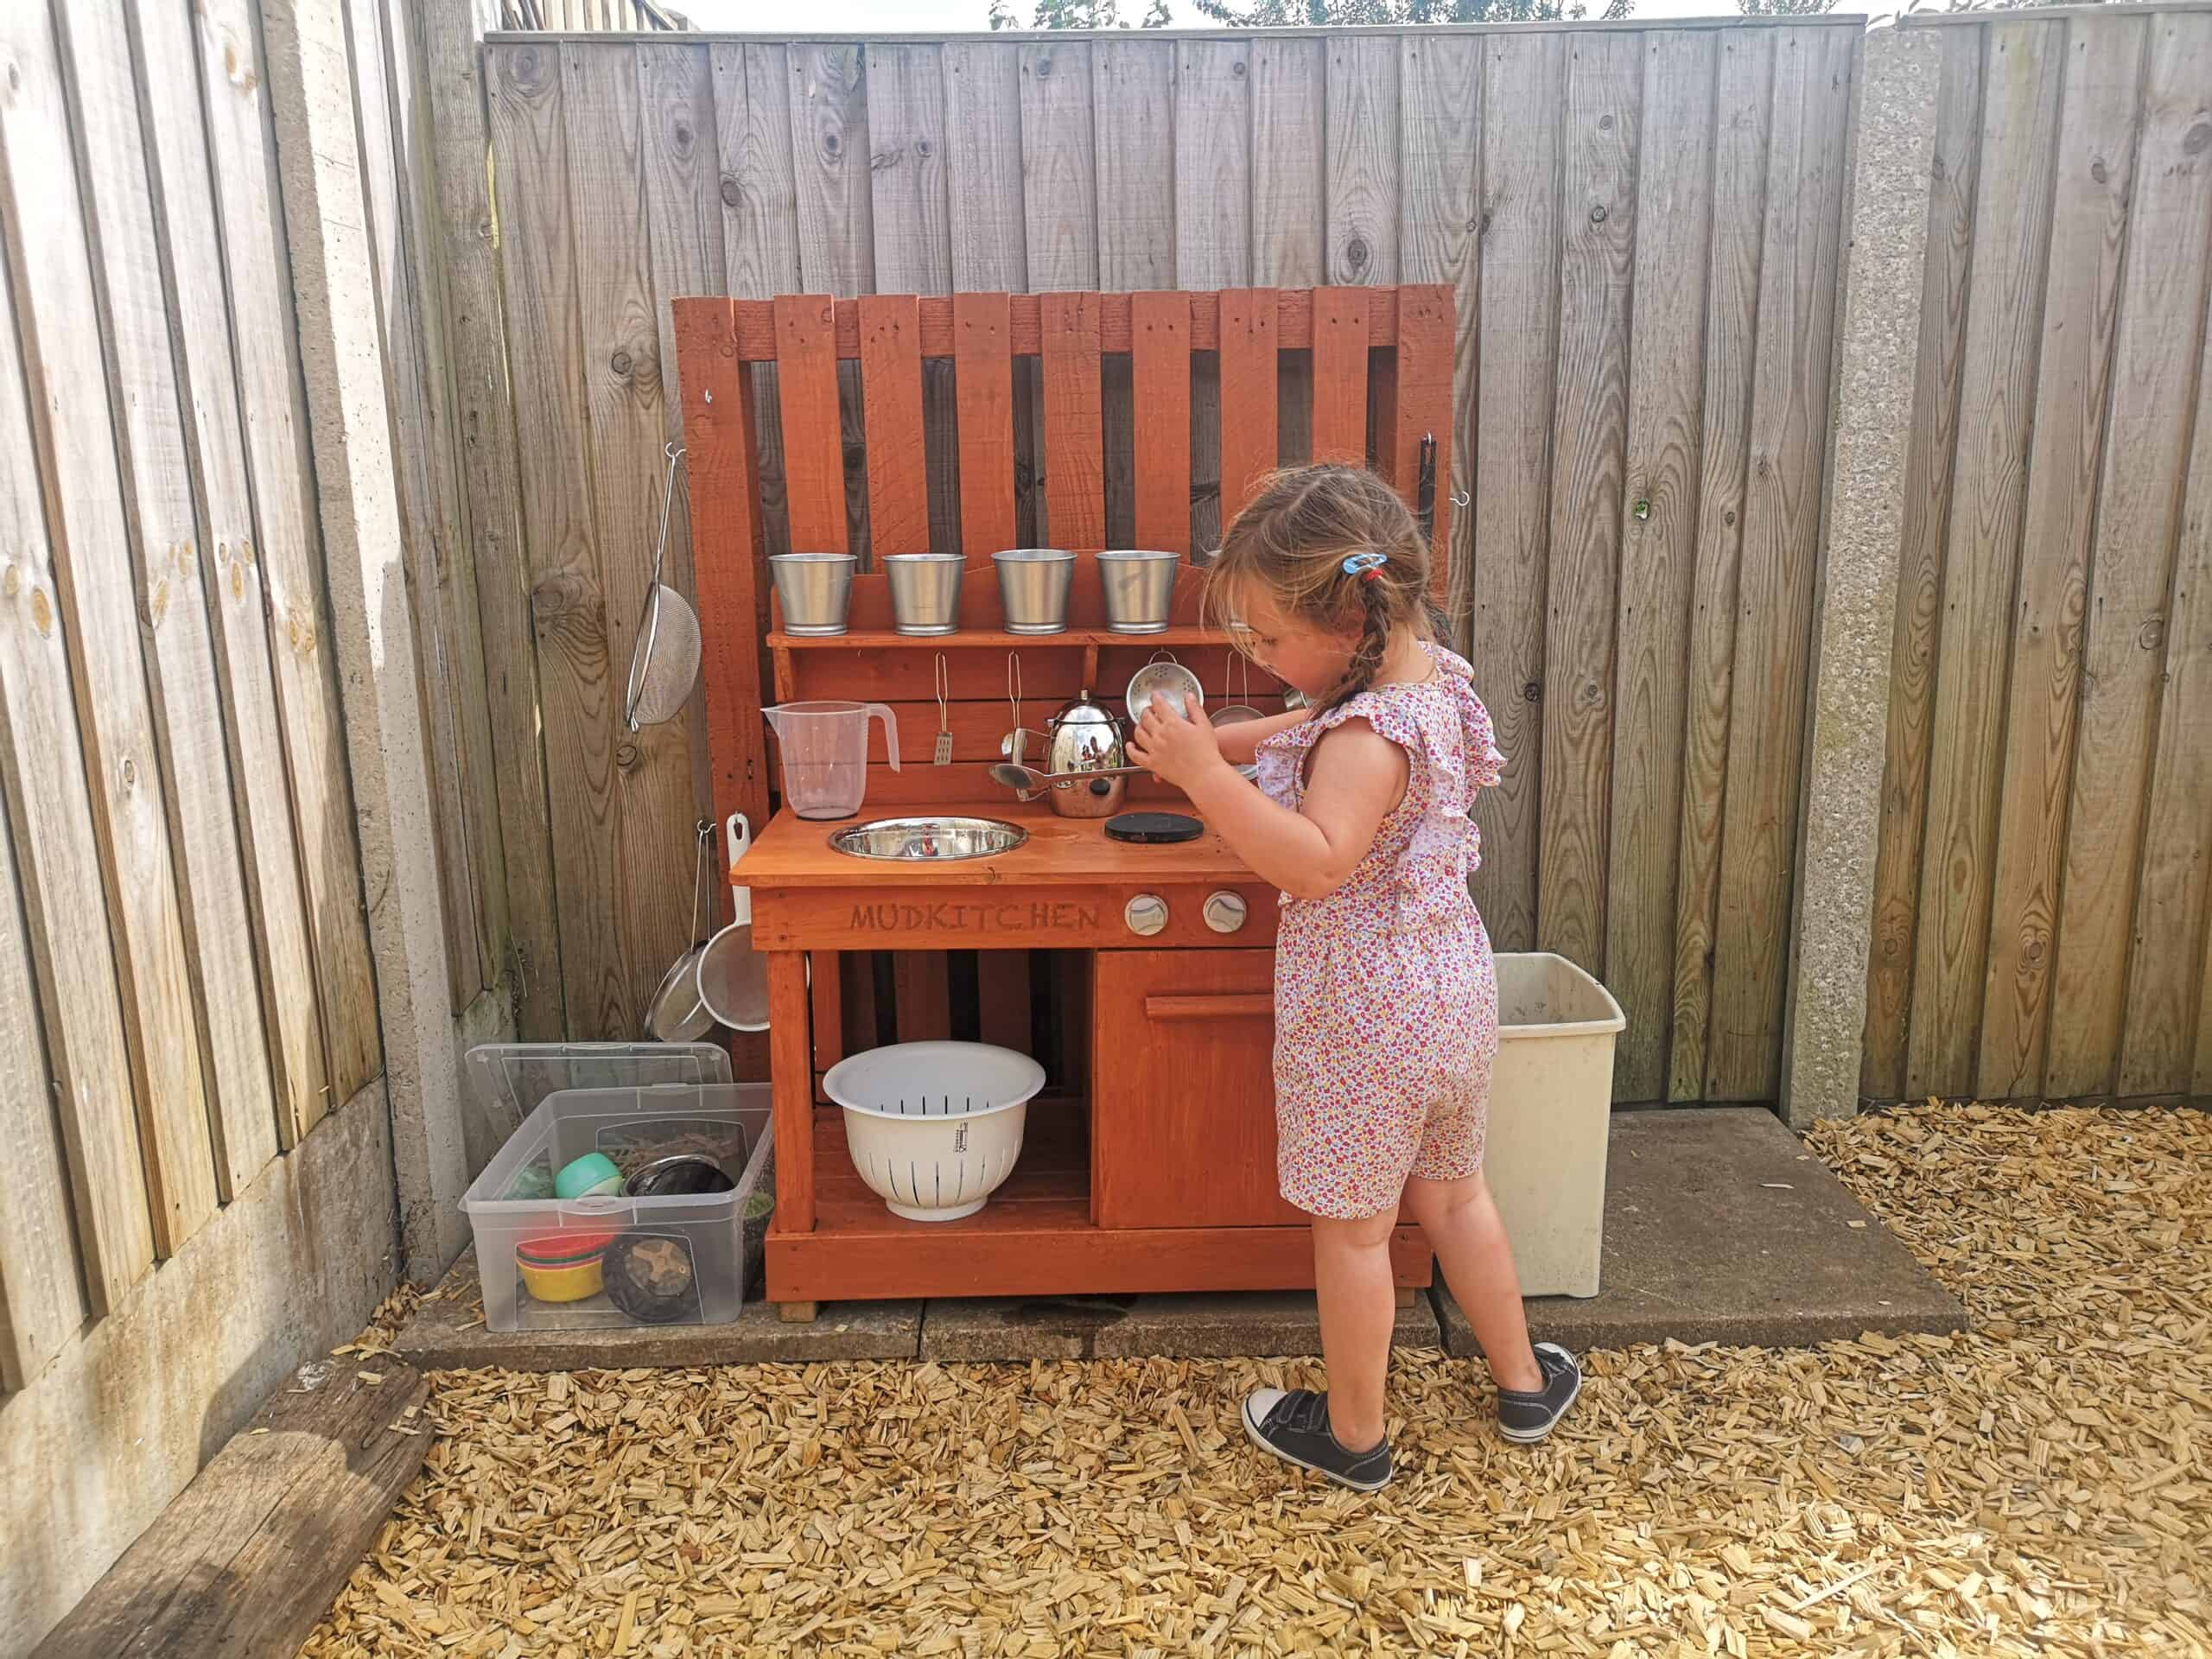 Erin enjoying the mud kitchen